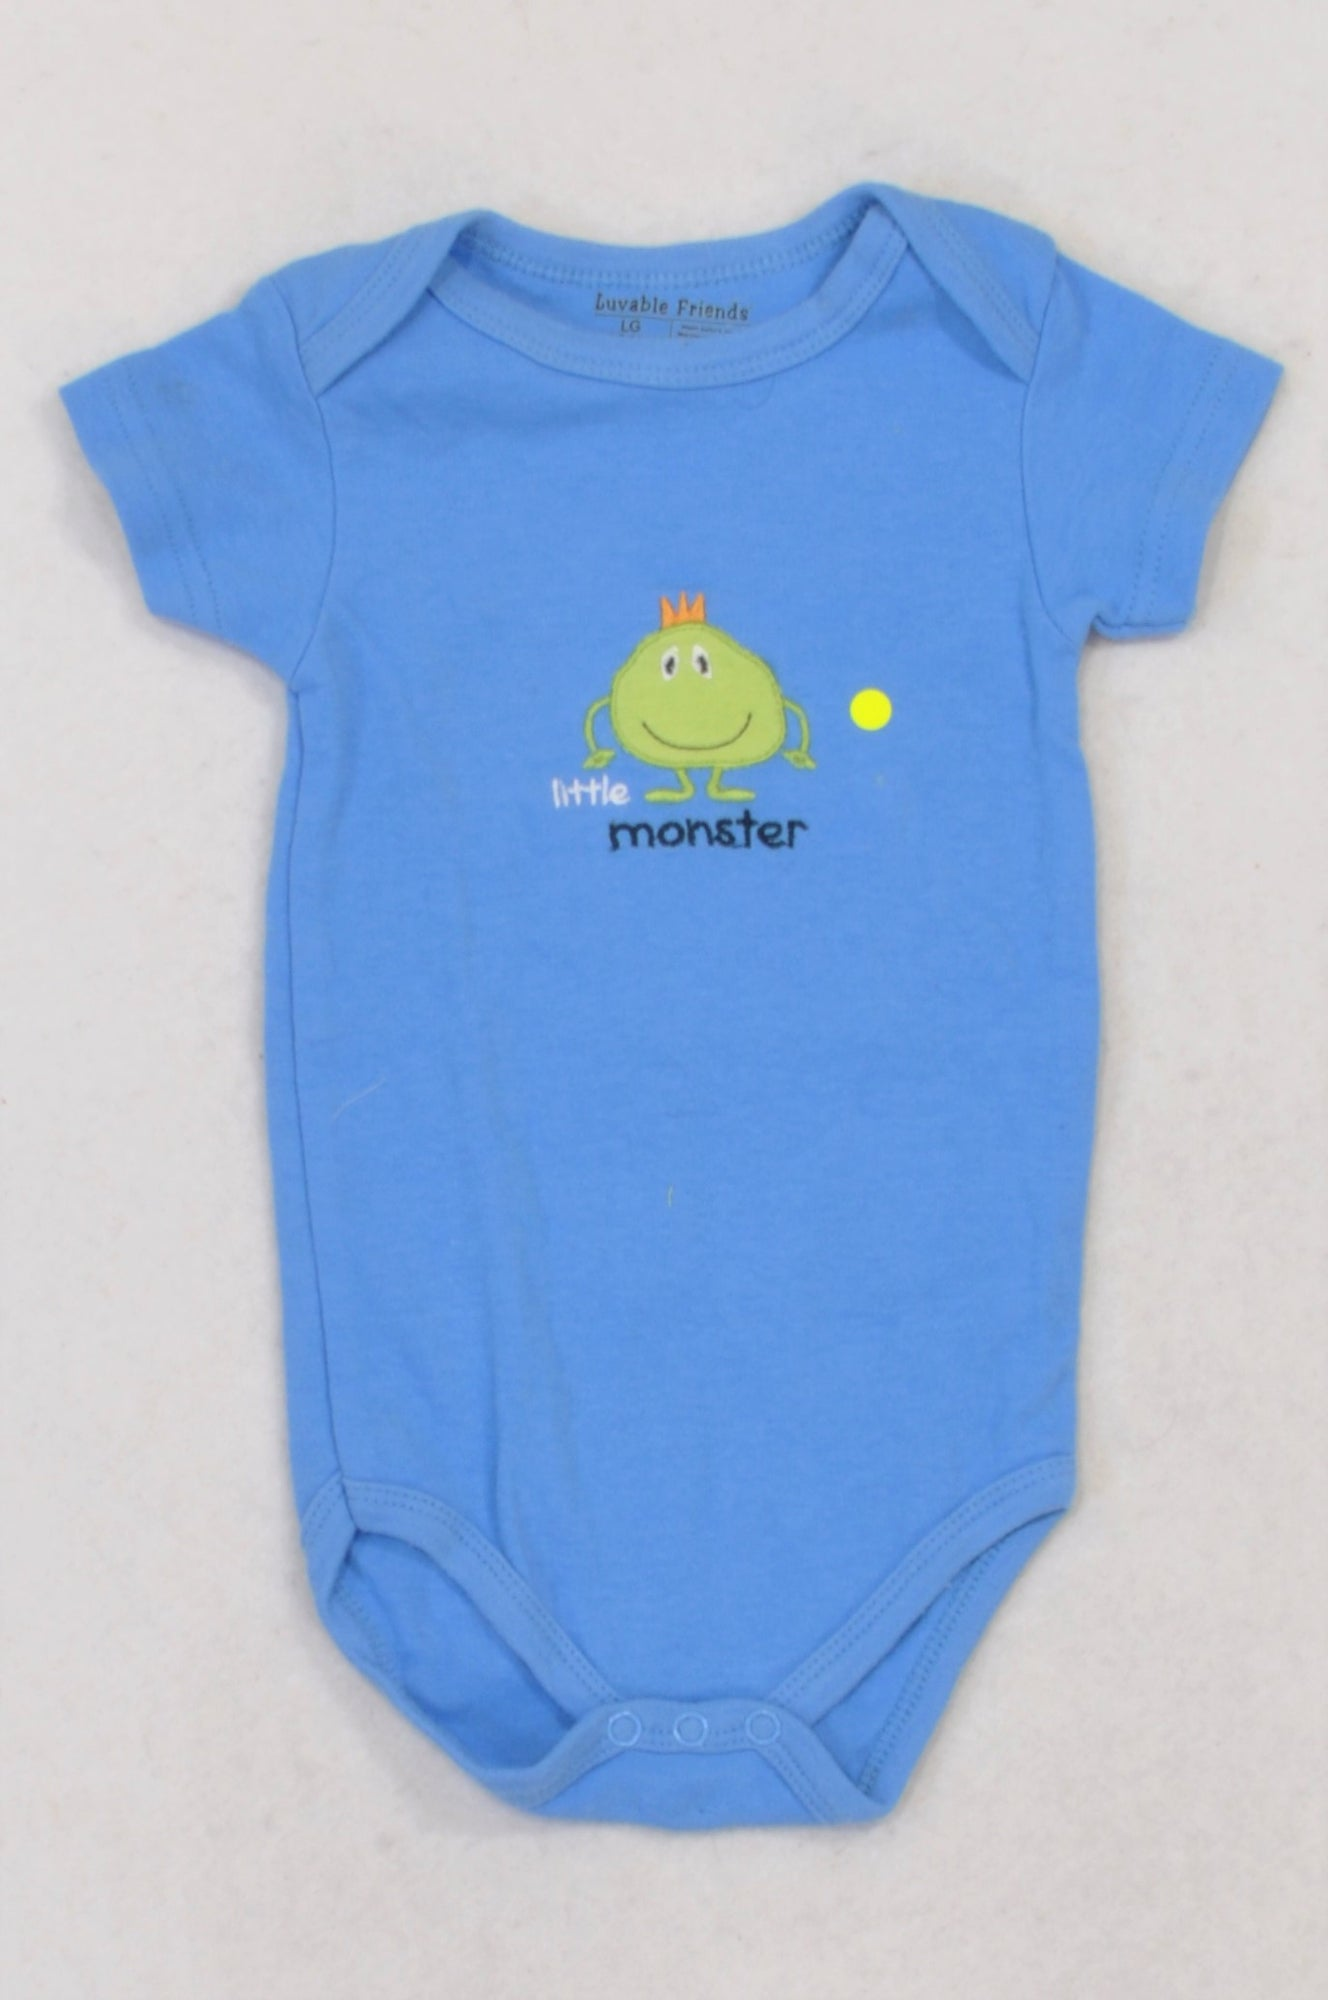 7ba3fa3b8dcf Luvable Friends Blue Little Monster Baby Grow Boys 6-9 months – Once More